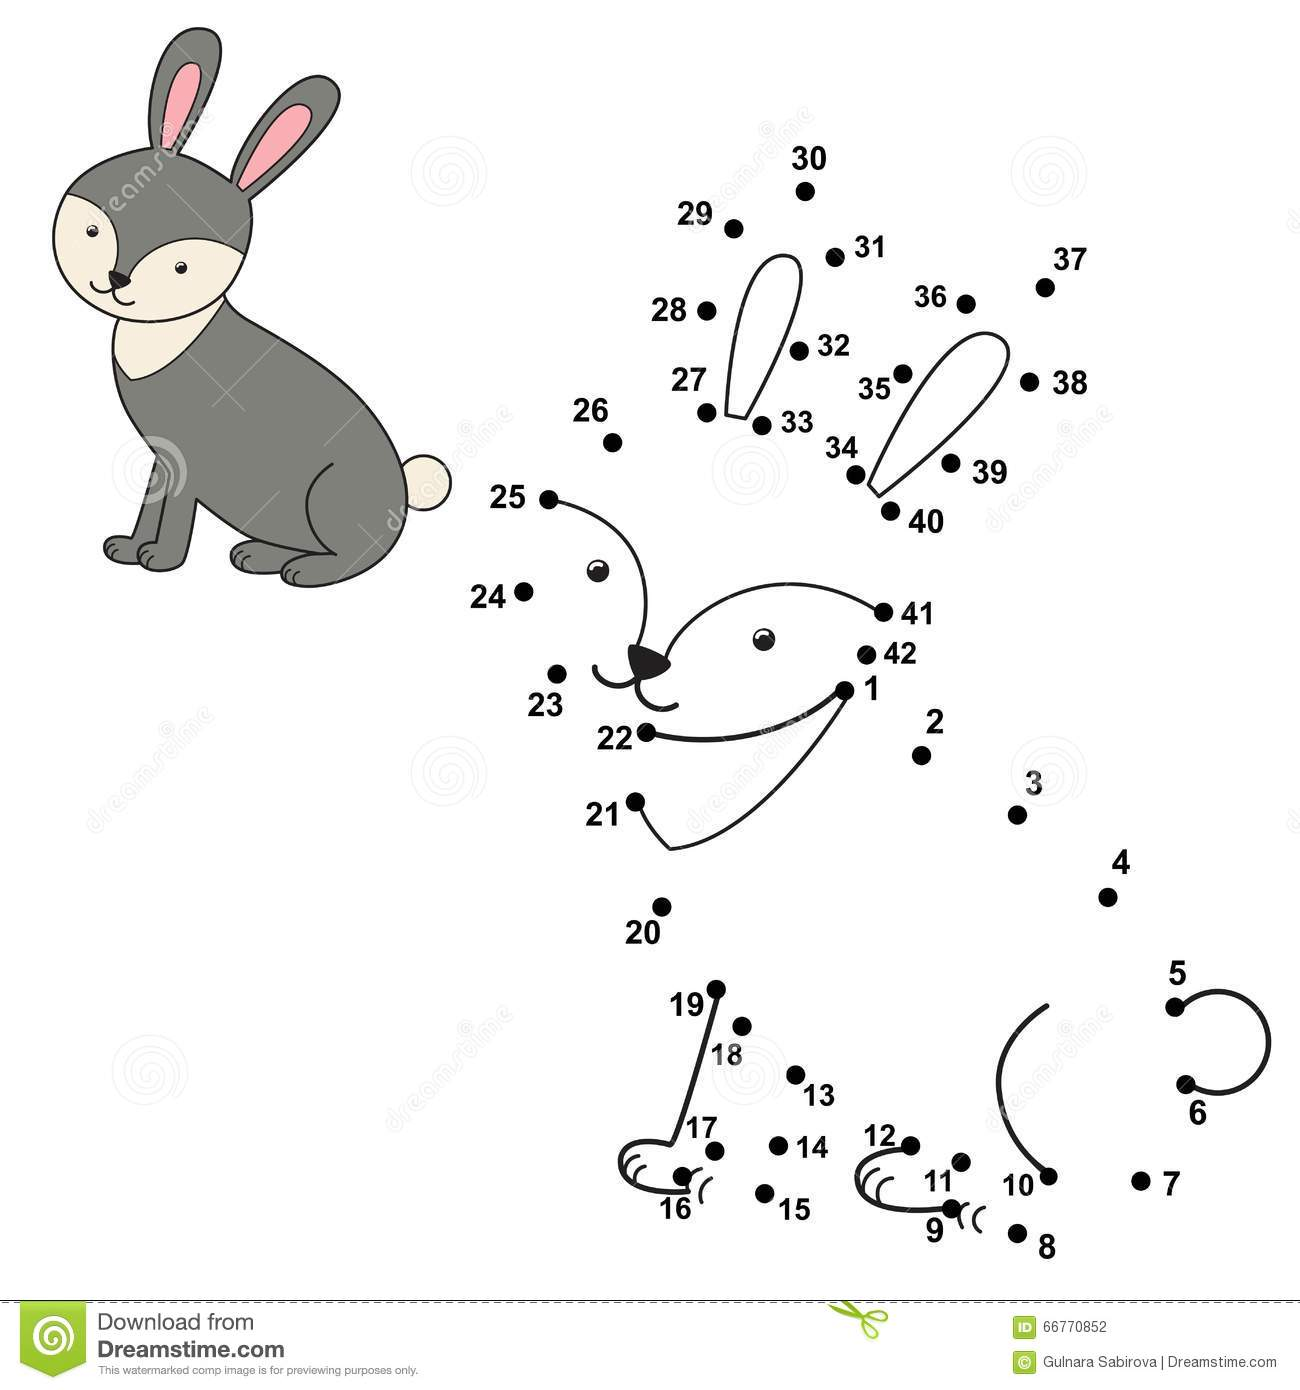 Connect The Dots To Draw The Cute Rabbit And Color It